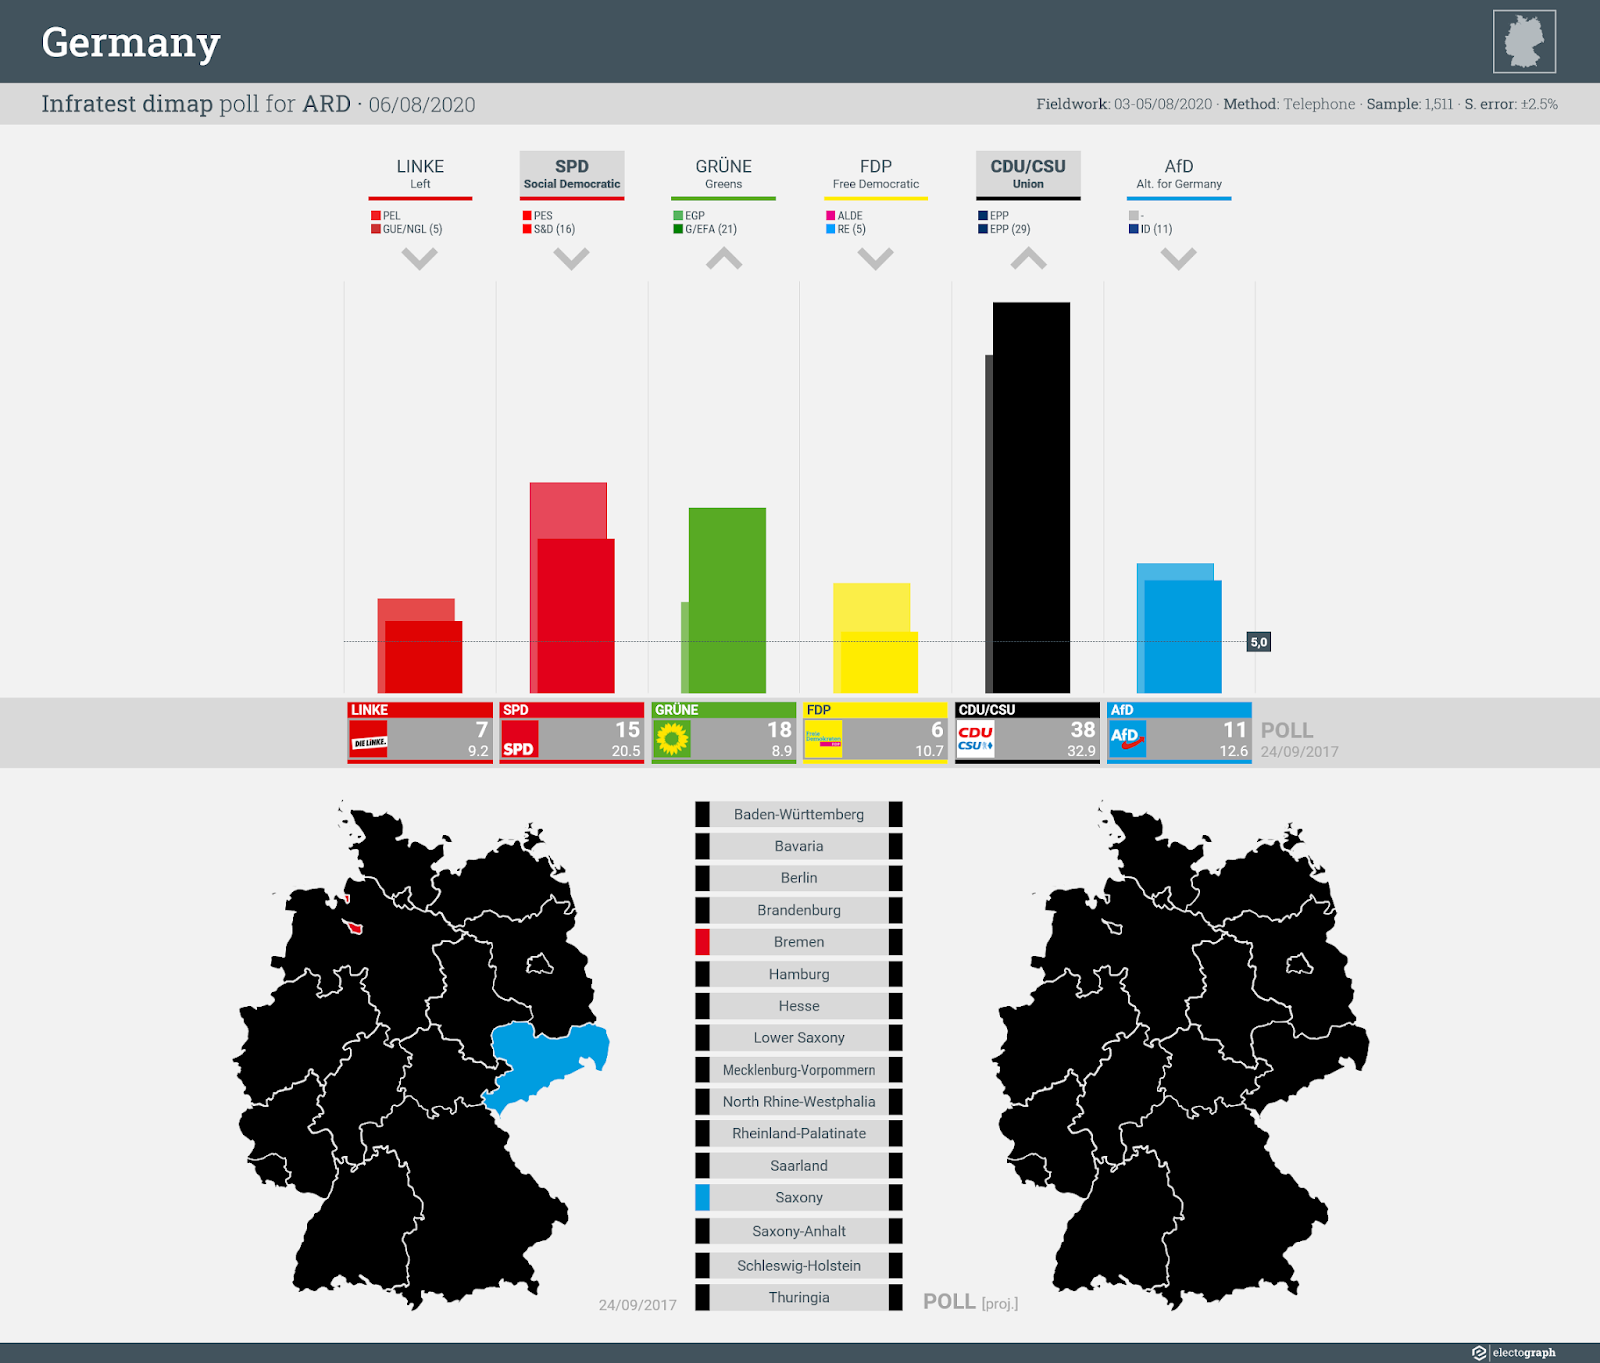 GERMANY: Infratest dimap poll chart for ARD, 6 August 2020